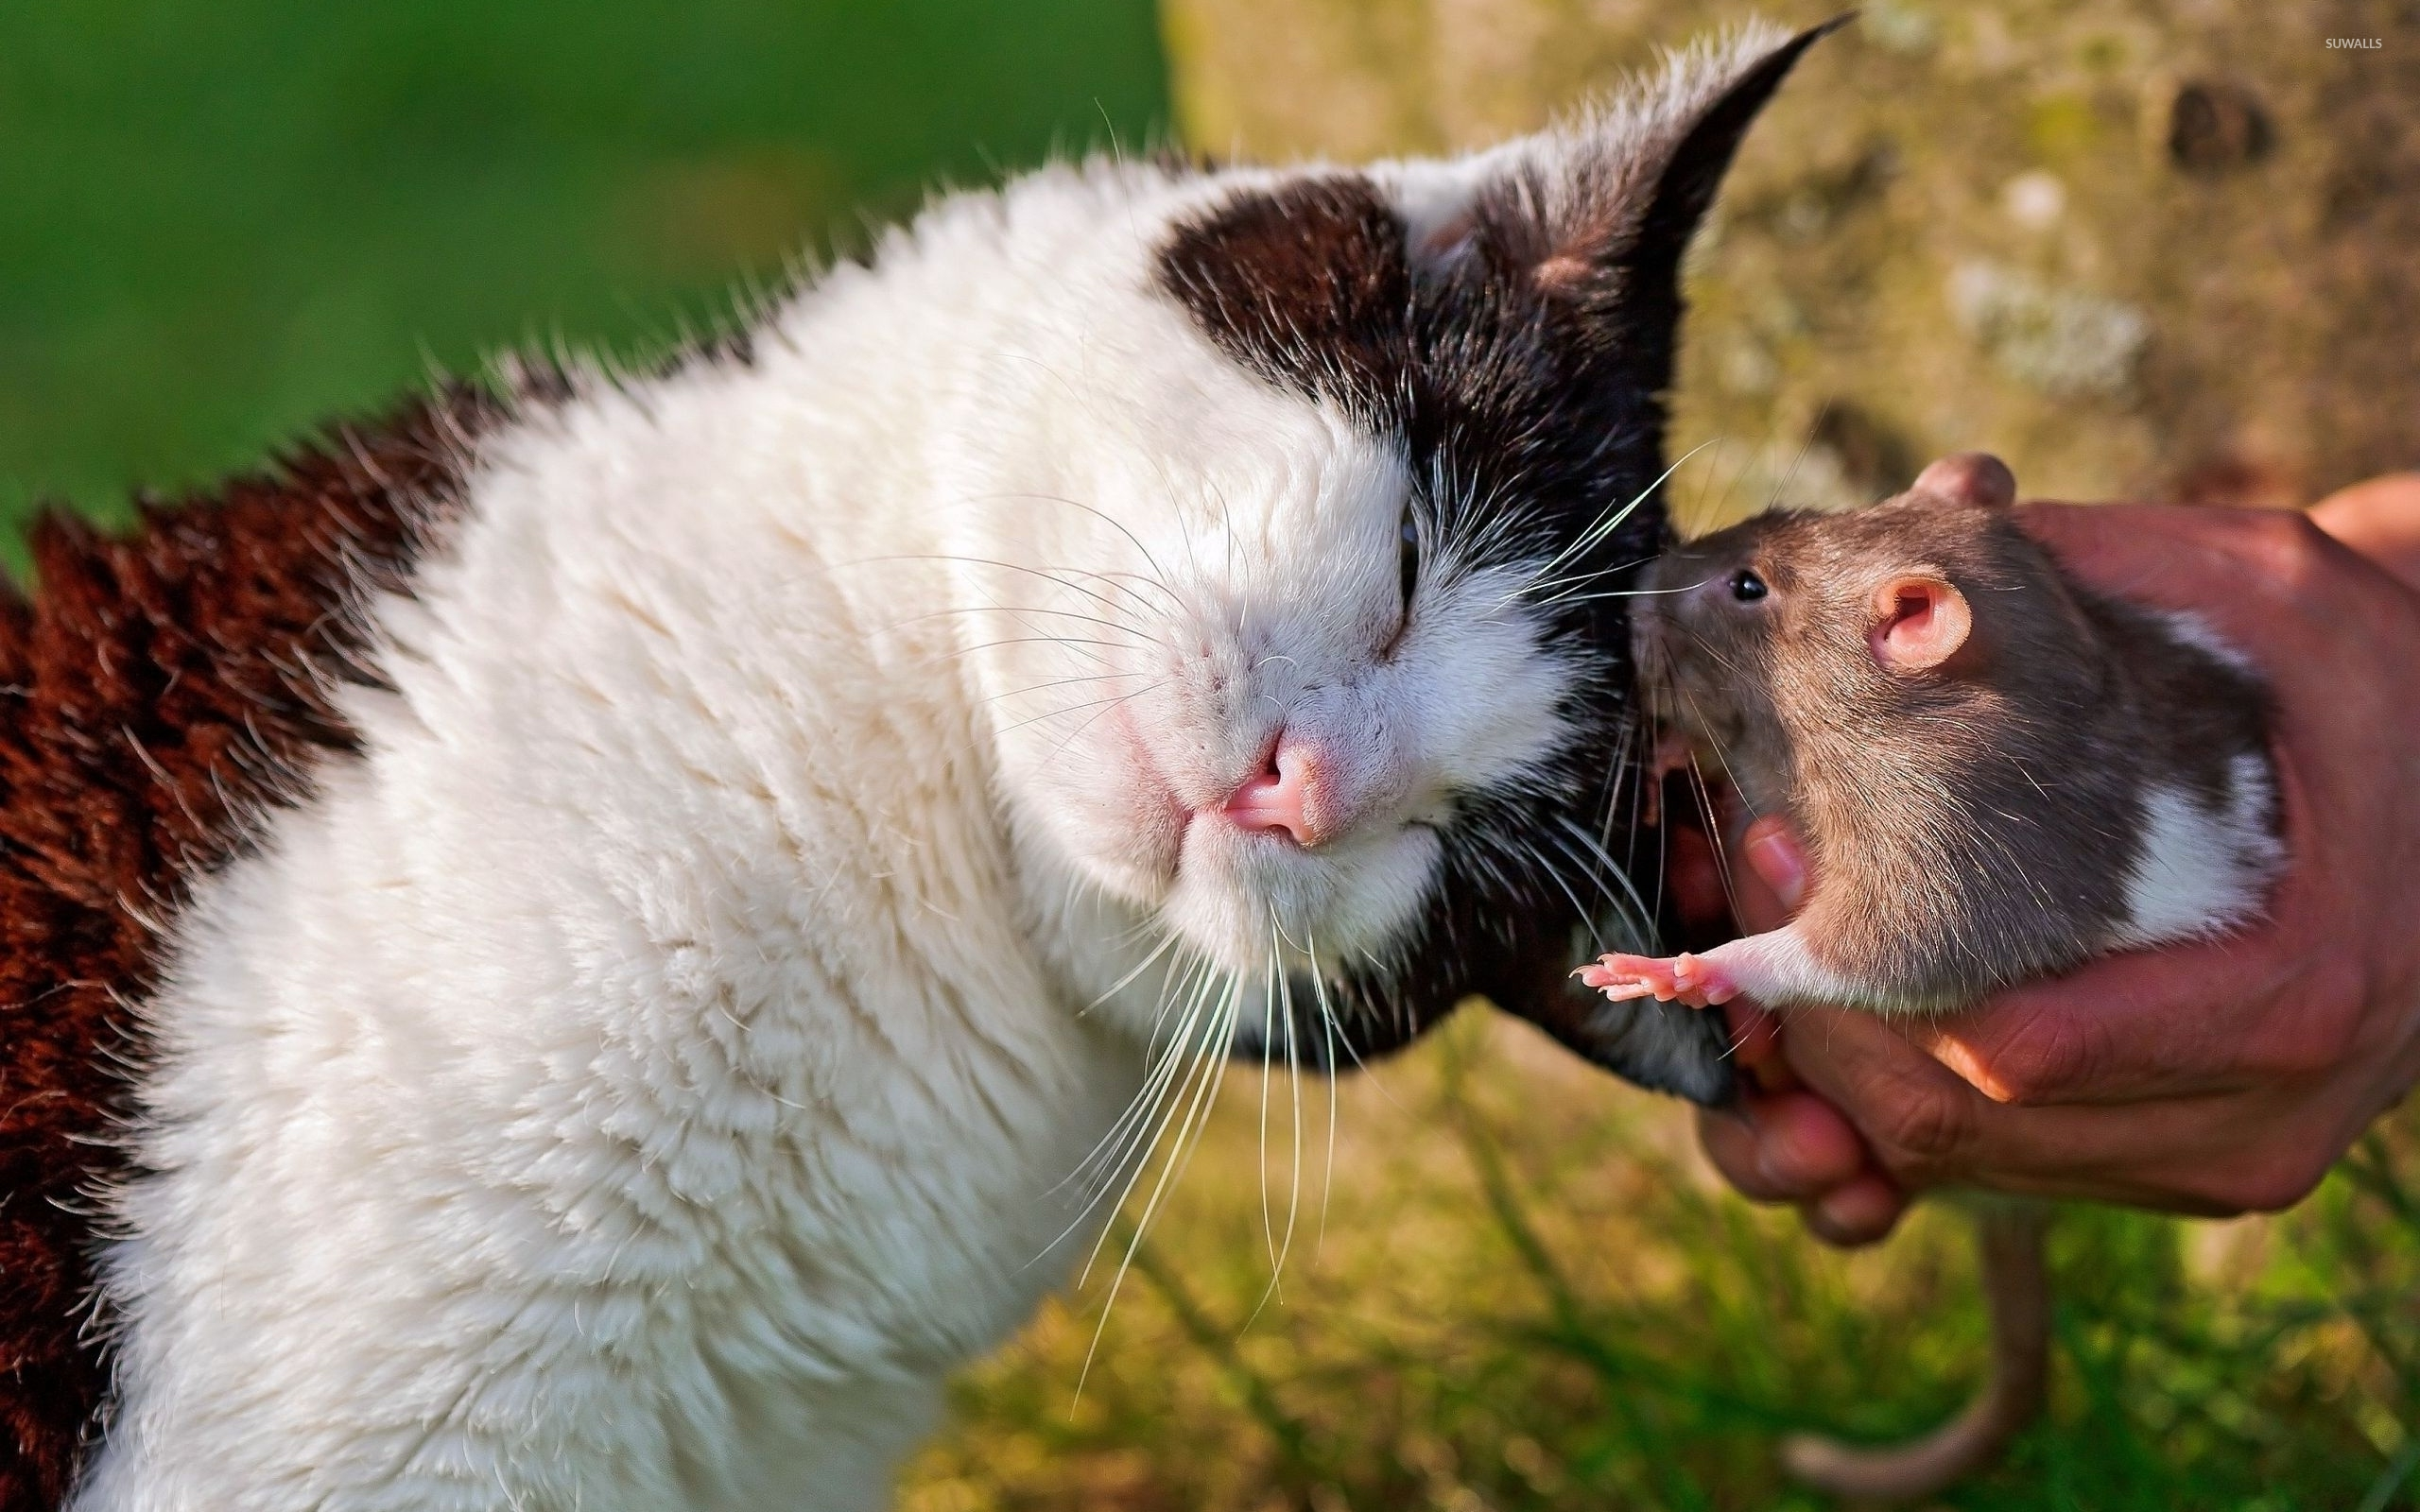 Cute Cat Wallpapers High Resolution Cat Cuddling With A Rat Wallpaper Animal Wallpapers 35083